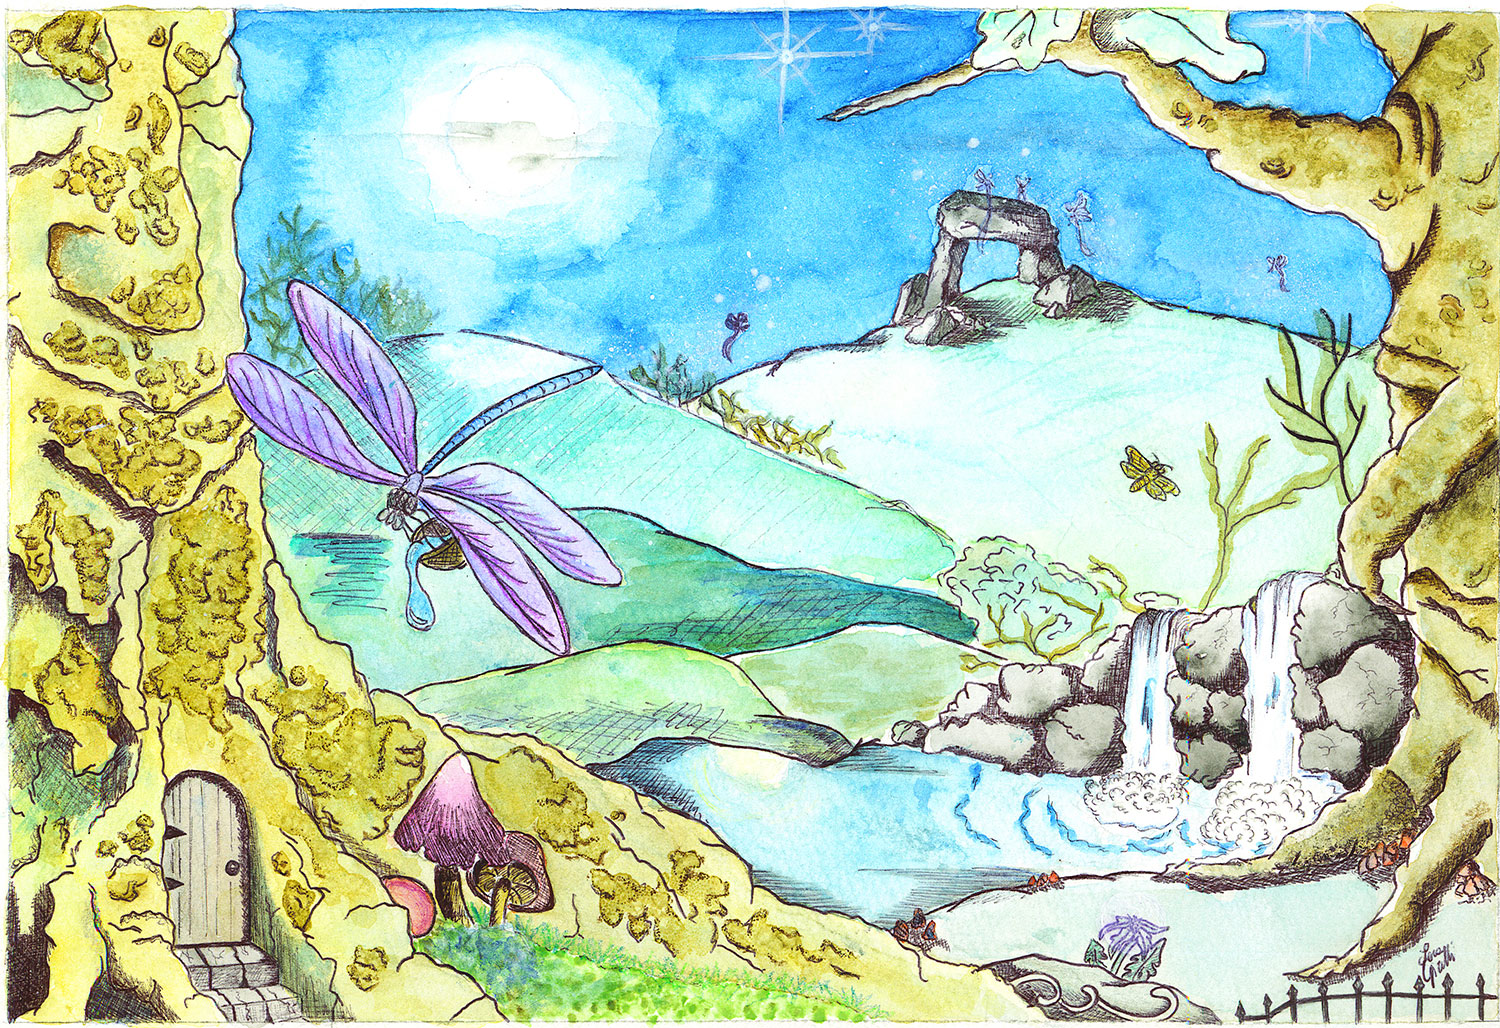 Nocturnal garden watercolour children illustration